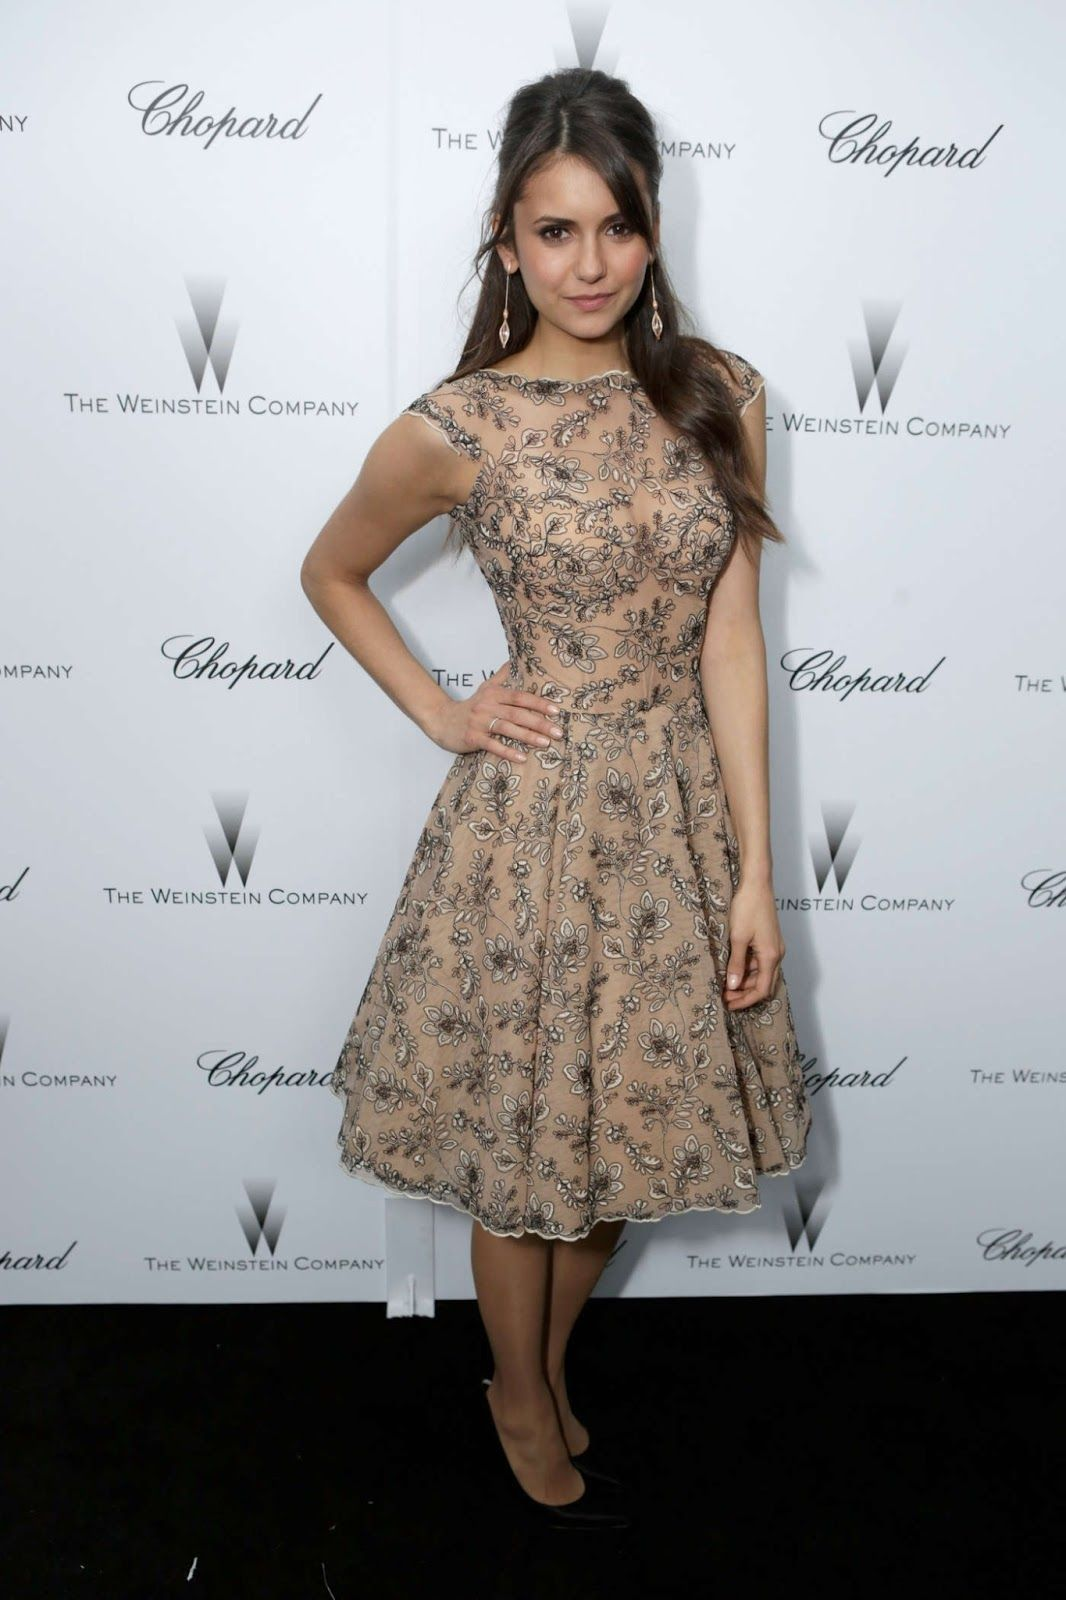 Nina Dobrev The Weinstein Company Academy Award Party 2013-001